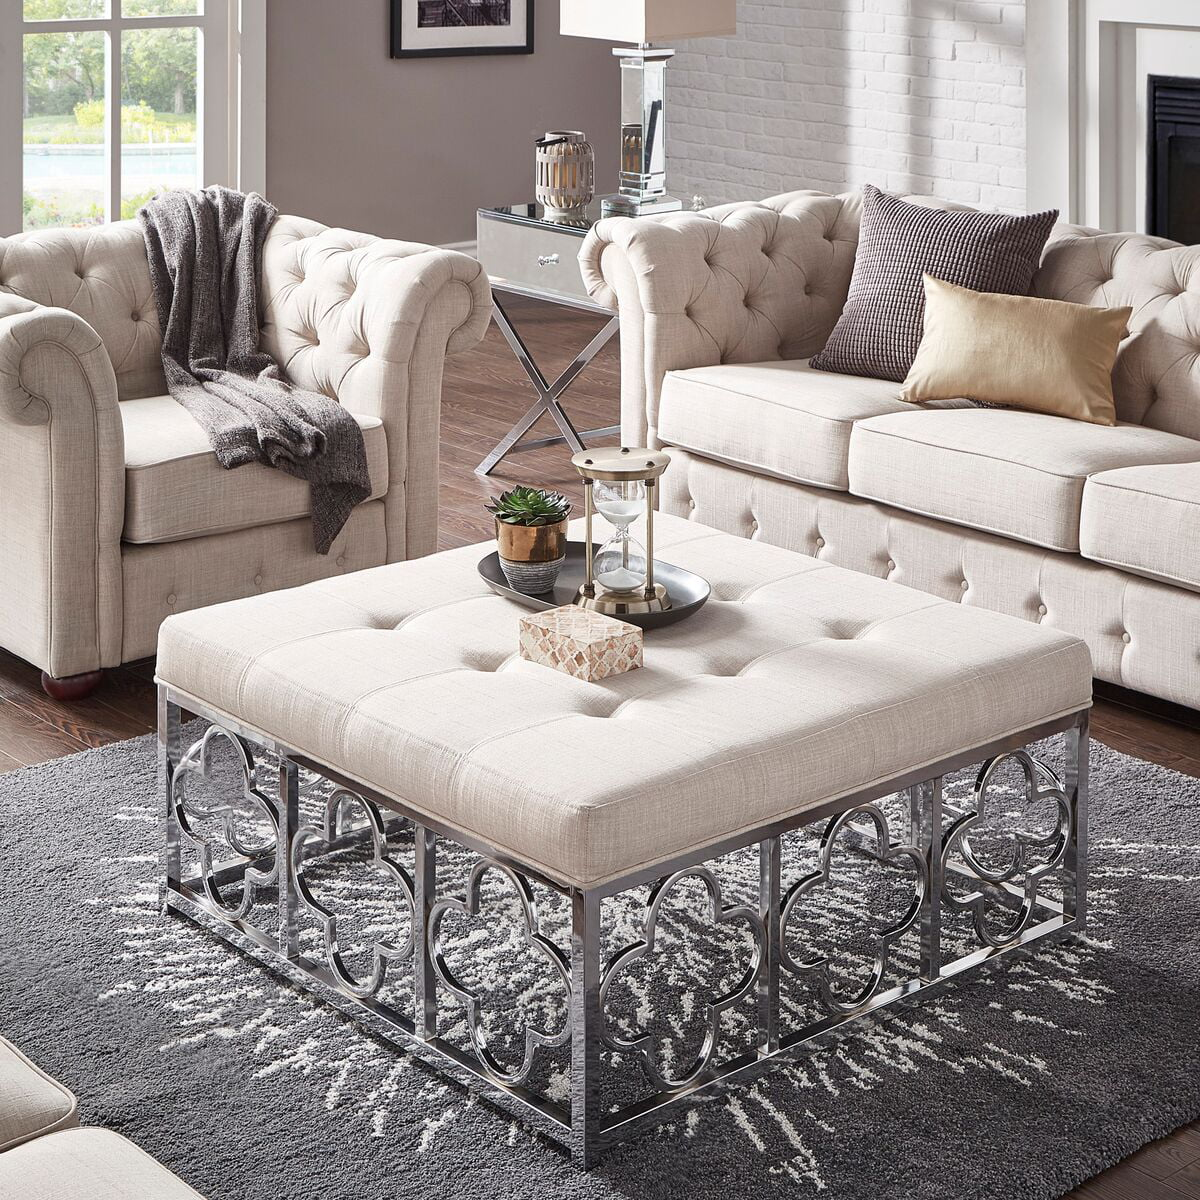 Square Ottoman Coffee Table Weston Home Libby Dimple Tufted Cushion Chrome Quatrefoil Base Square Ottoman Coffee Table Multiple Colors